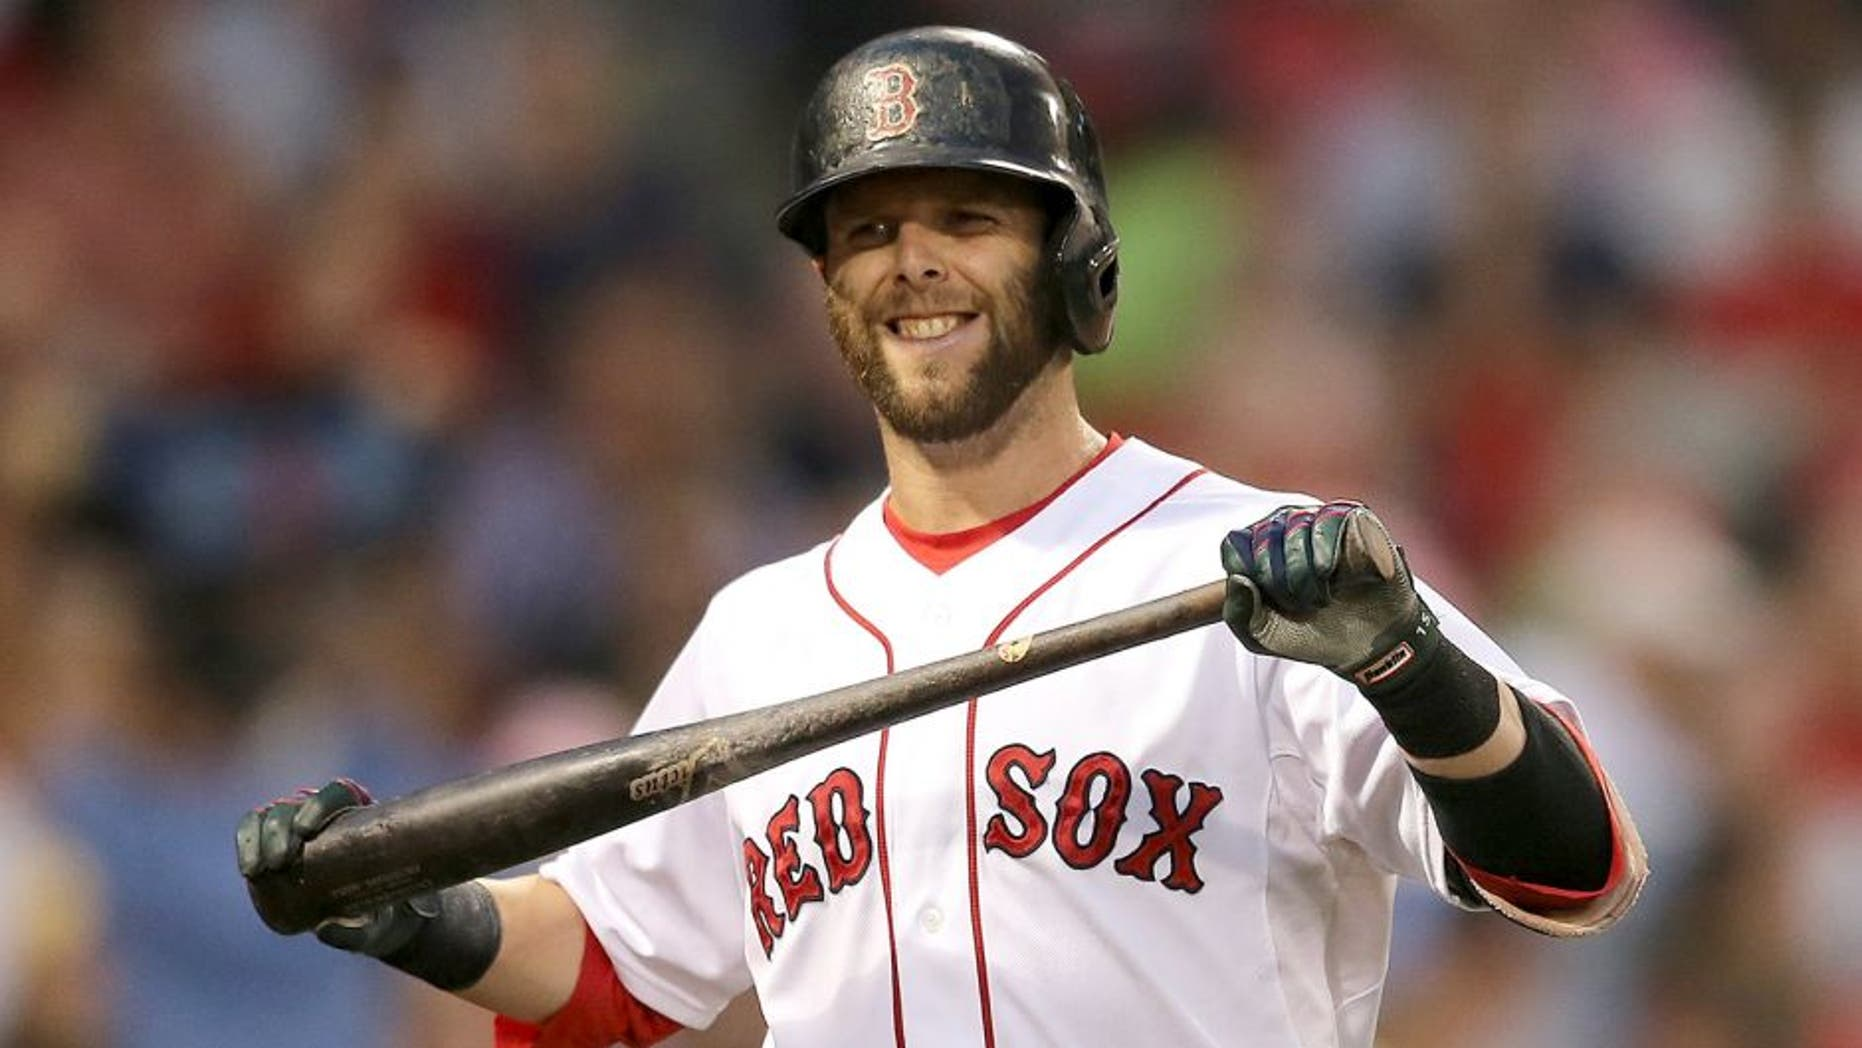 BOSTON, MA - JUNE 23: Dustin Pedroia #15 of the Boston Red Sox reacts after he struck out against the Baltimore Orioles in the fourth inning at Fenway Park on June 23, 2015 in Boston, Massachusetts. (Photo by Jim Rogash/Getty Images)